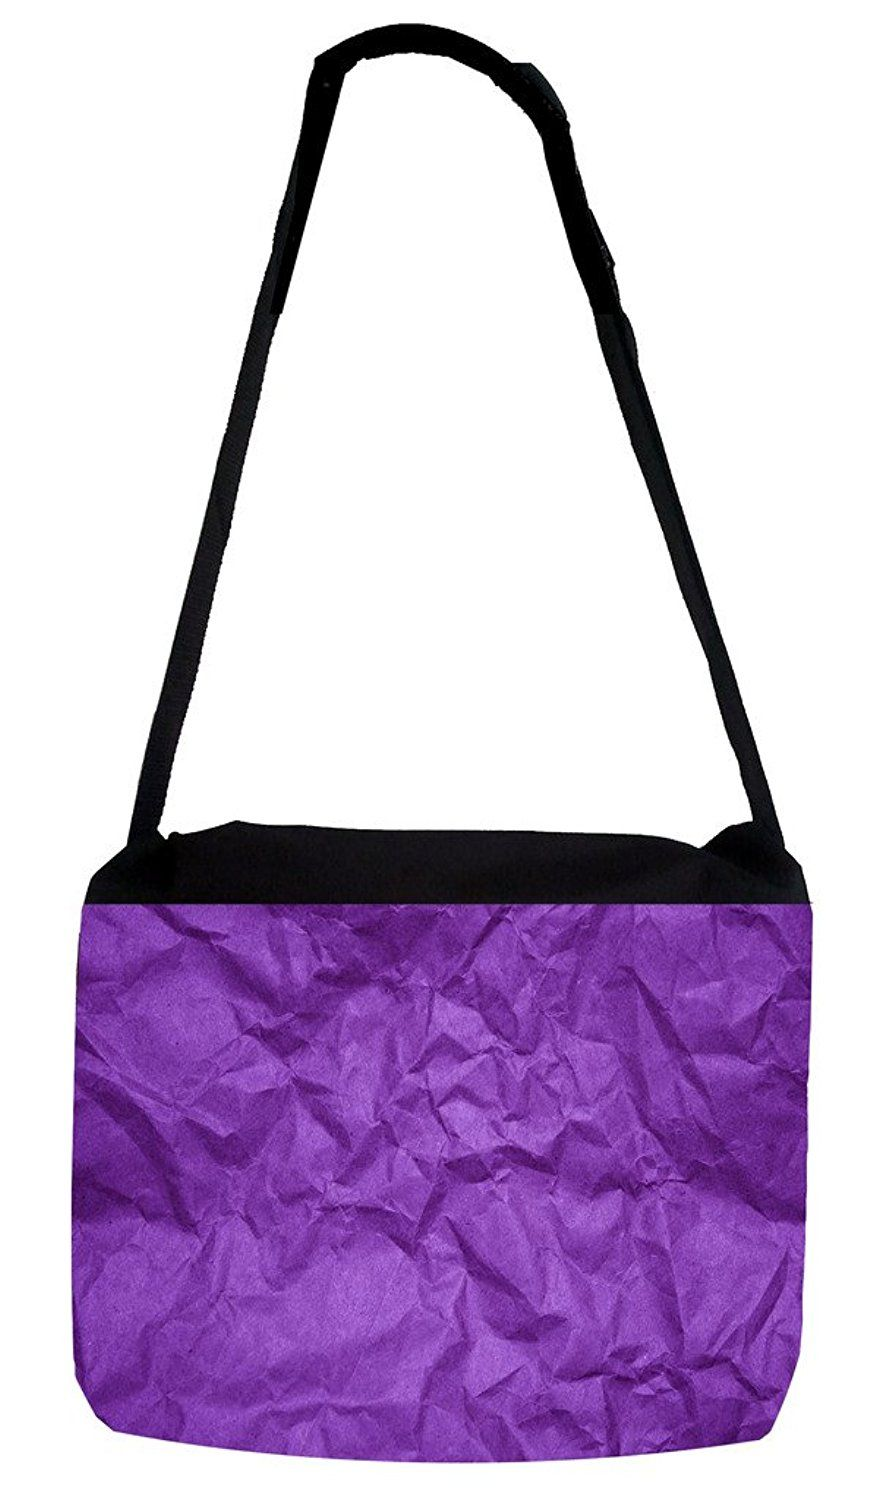 Rosie Parker Inc. TM Medium Sized Messenger Bag 11.75  x 15.5  - Purple  Crinkle Paper PRINT Design   Want additional info  Click on the image. 07ebe21ee9ca7